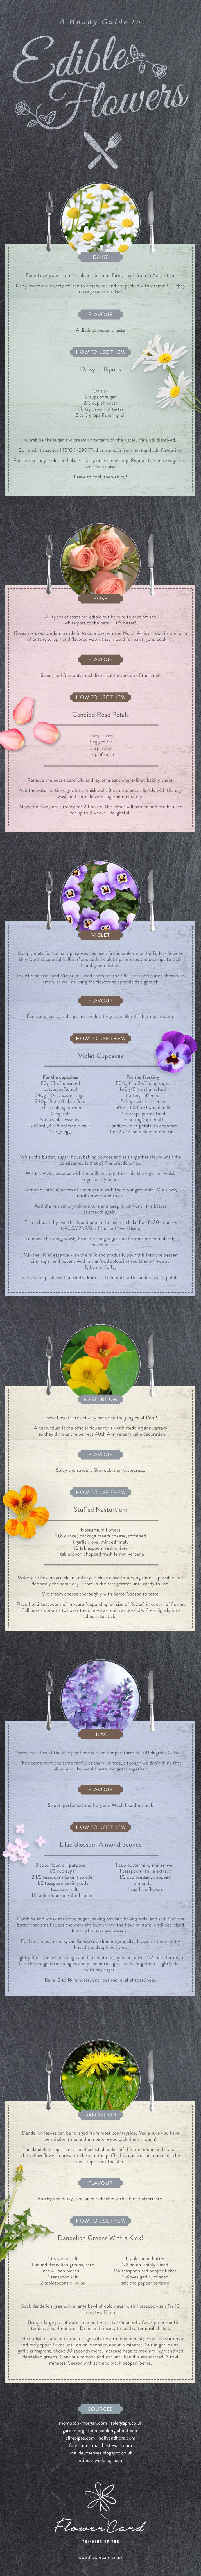 A Handy Guide to Edible Flowers #Infographic #Food #Flower